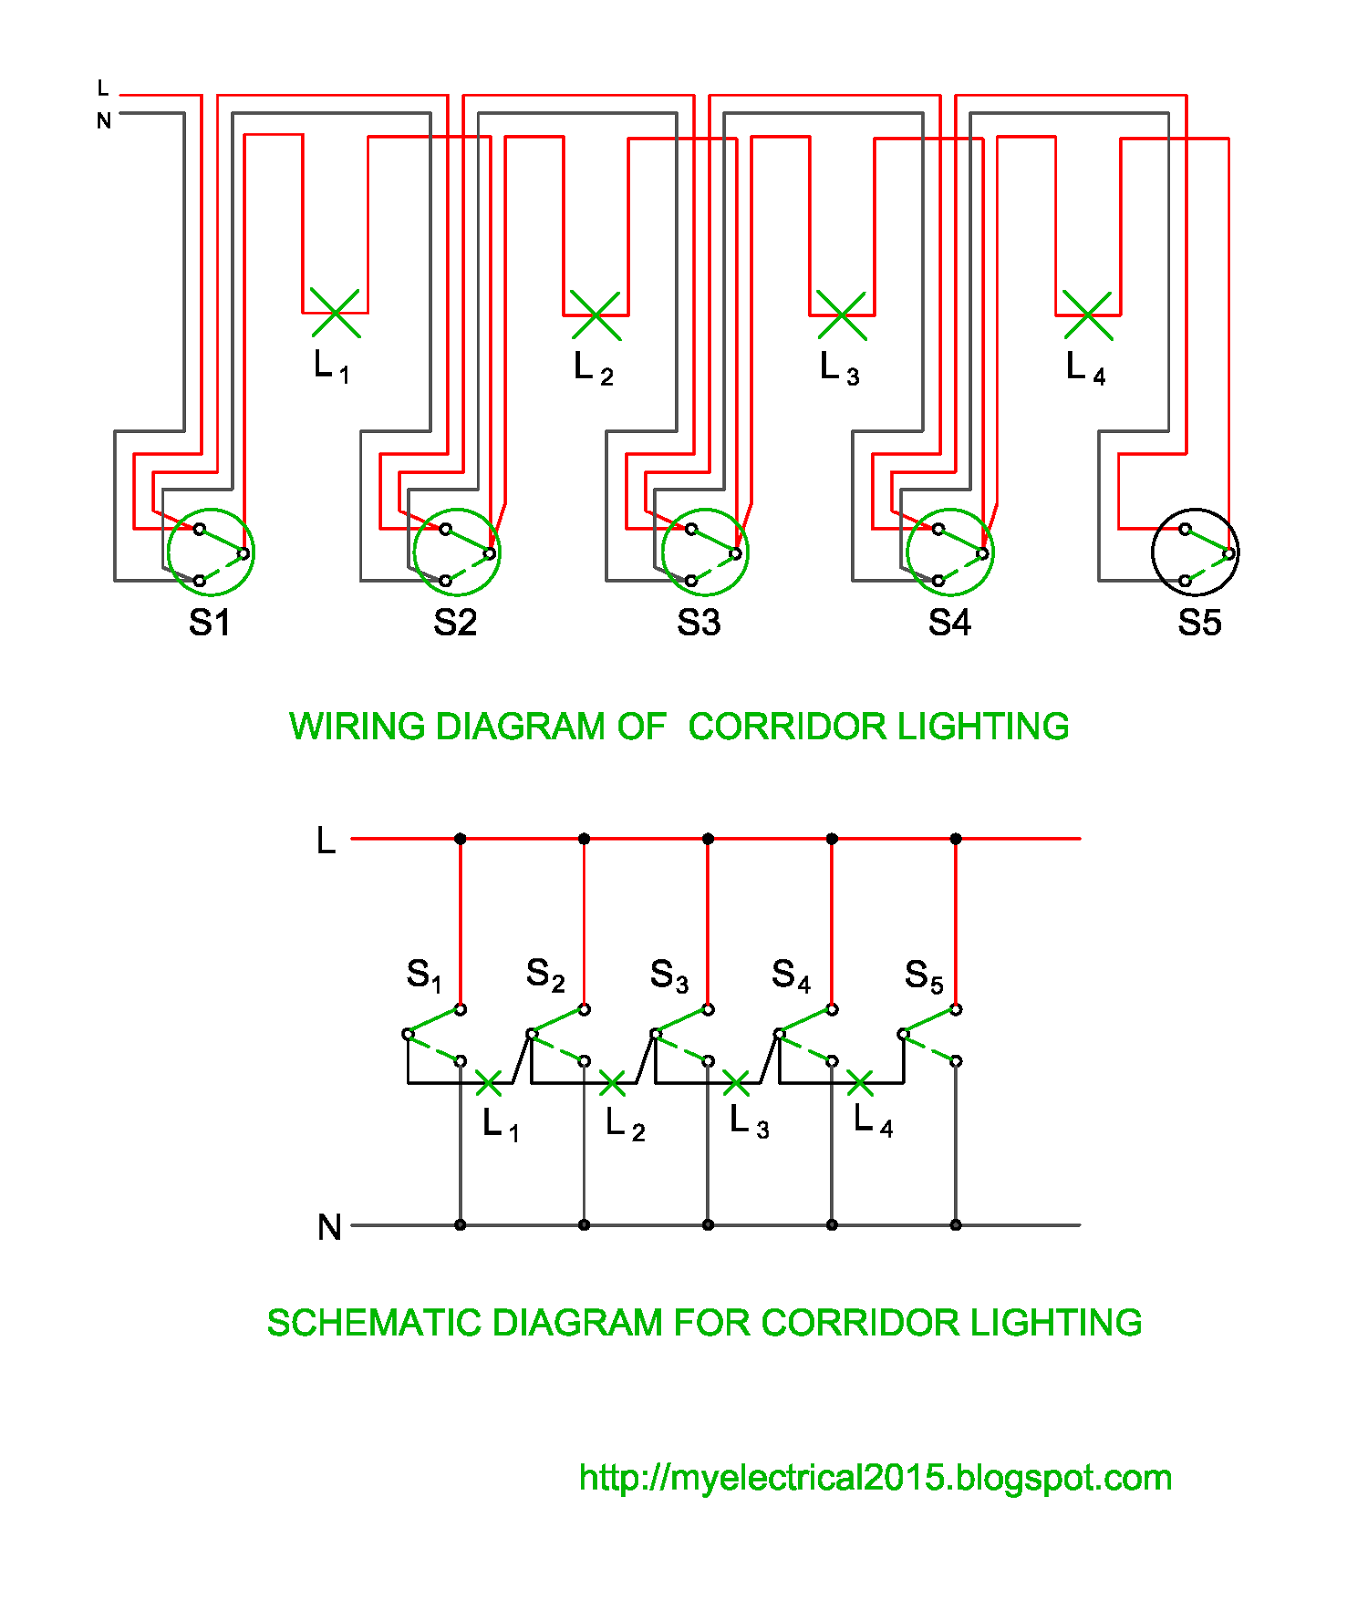 Godown Wiring Circuit Diagram 29 Images Application Of Corridor2bwiring And Schematic Corridor Lighting Electrical At